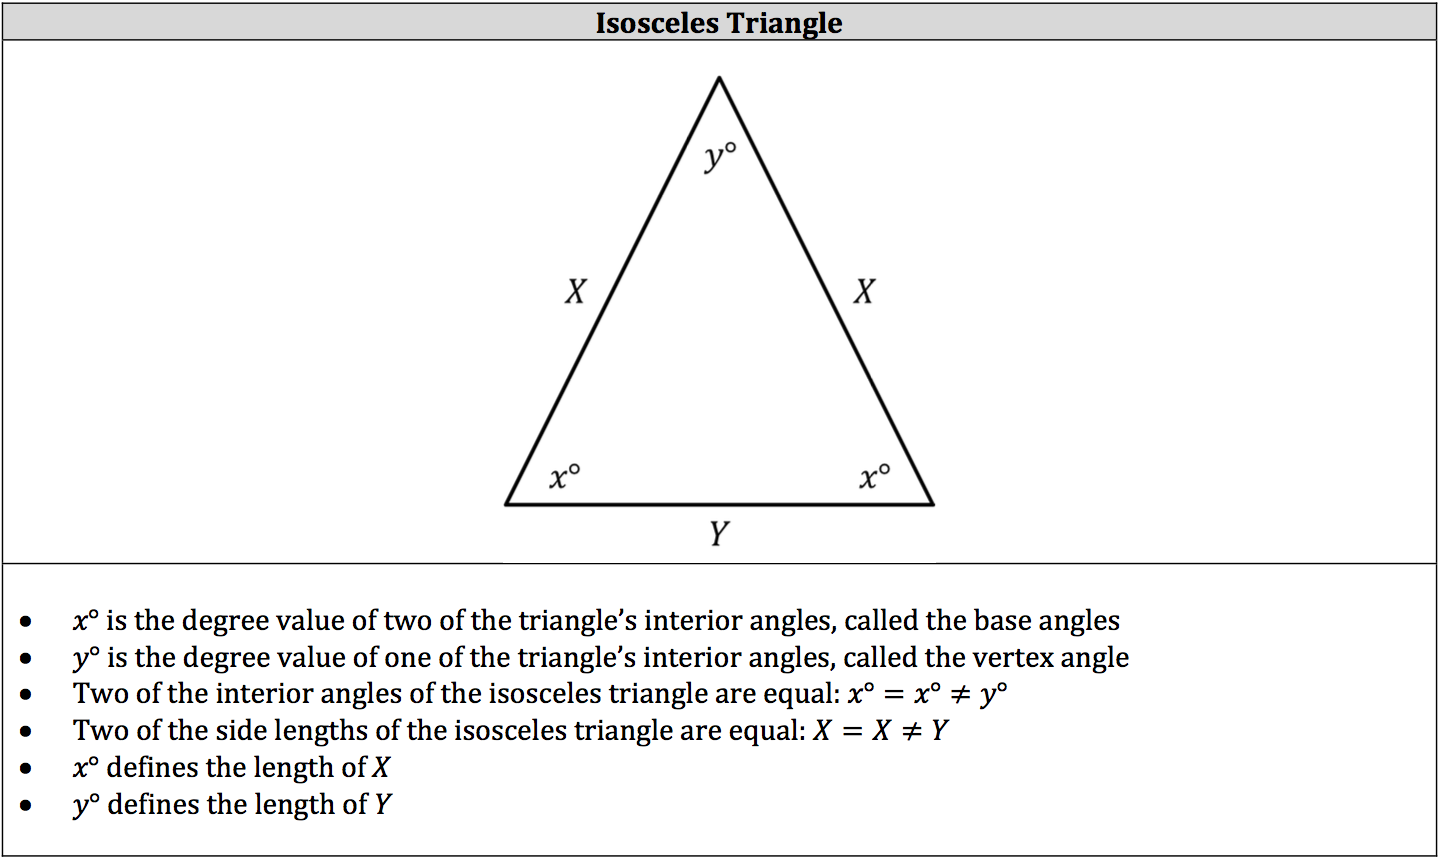 isoceles-triangle